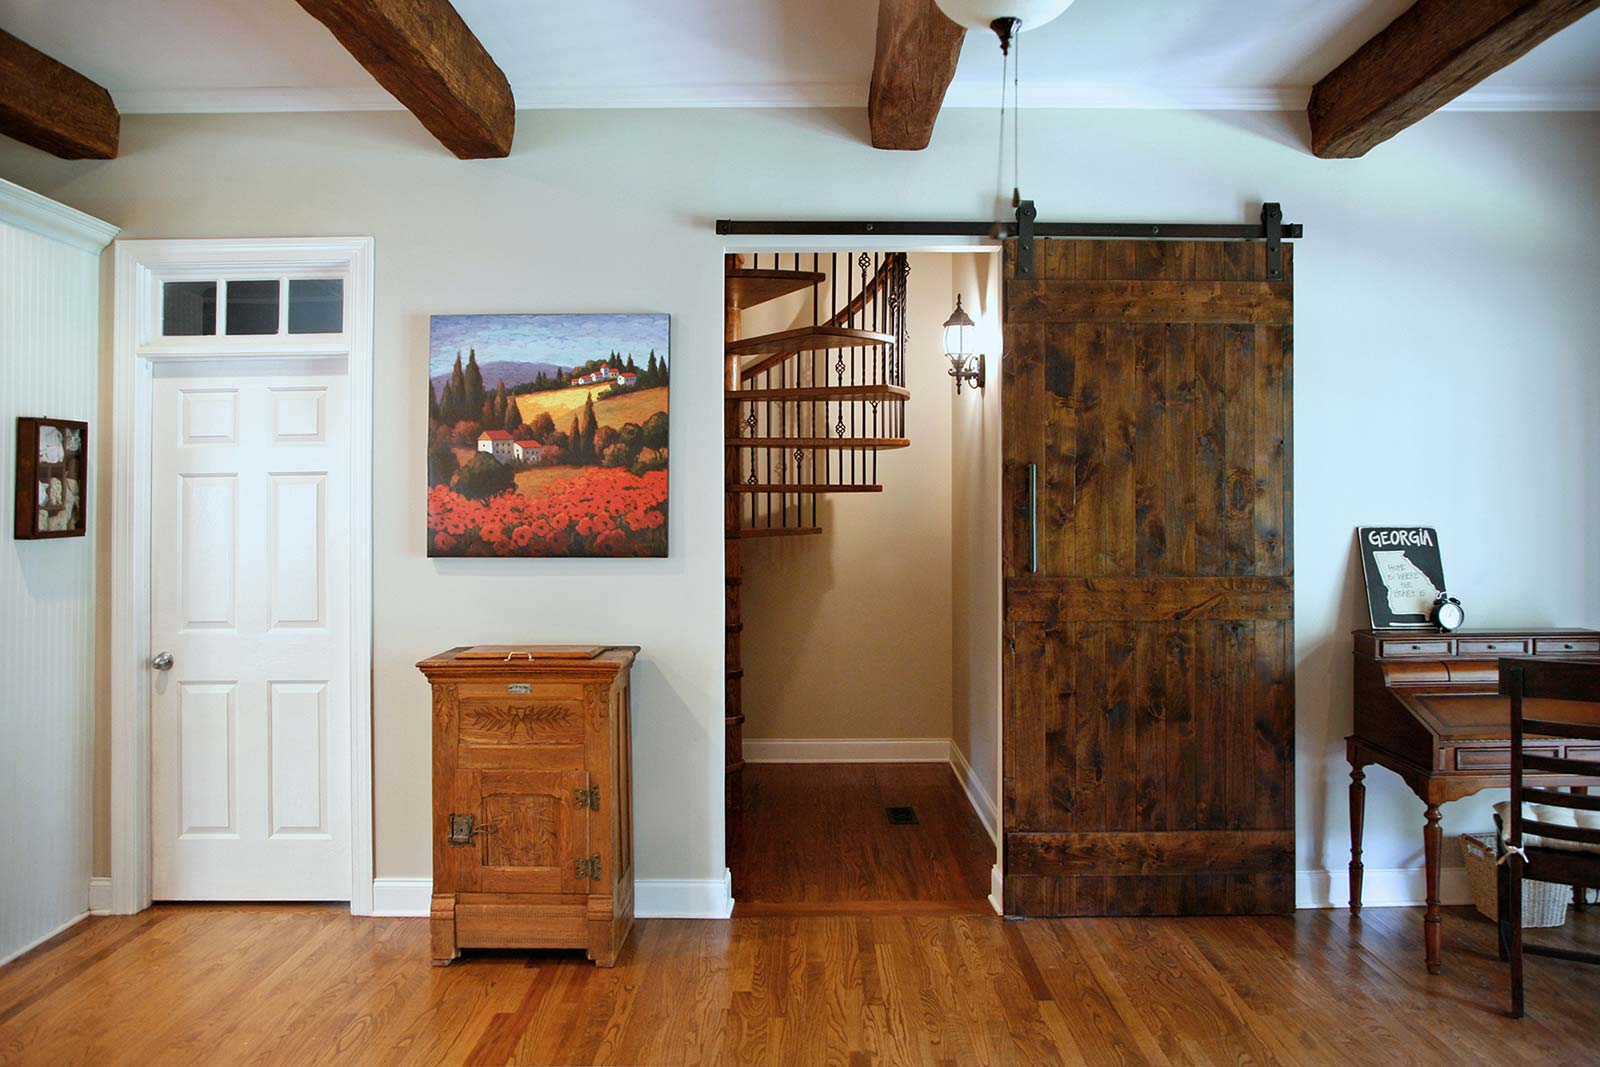 Barndoor style door conceals spiral stairs